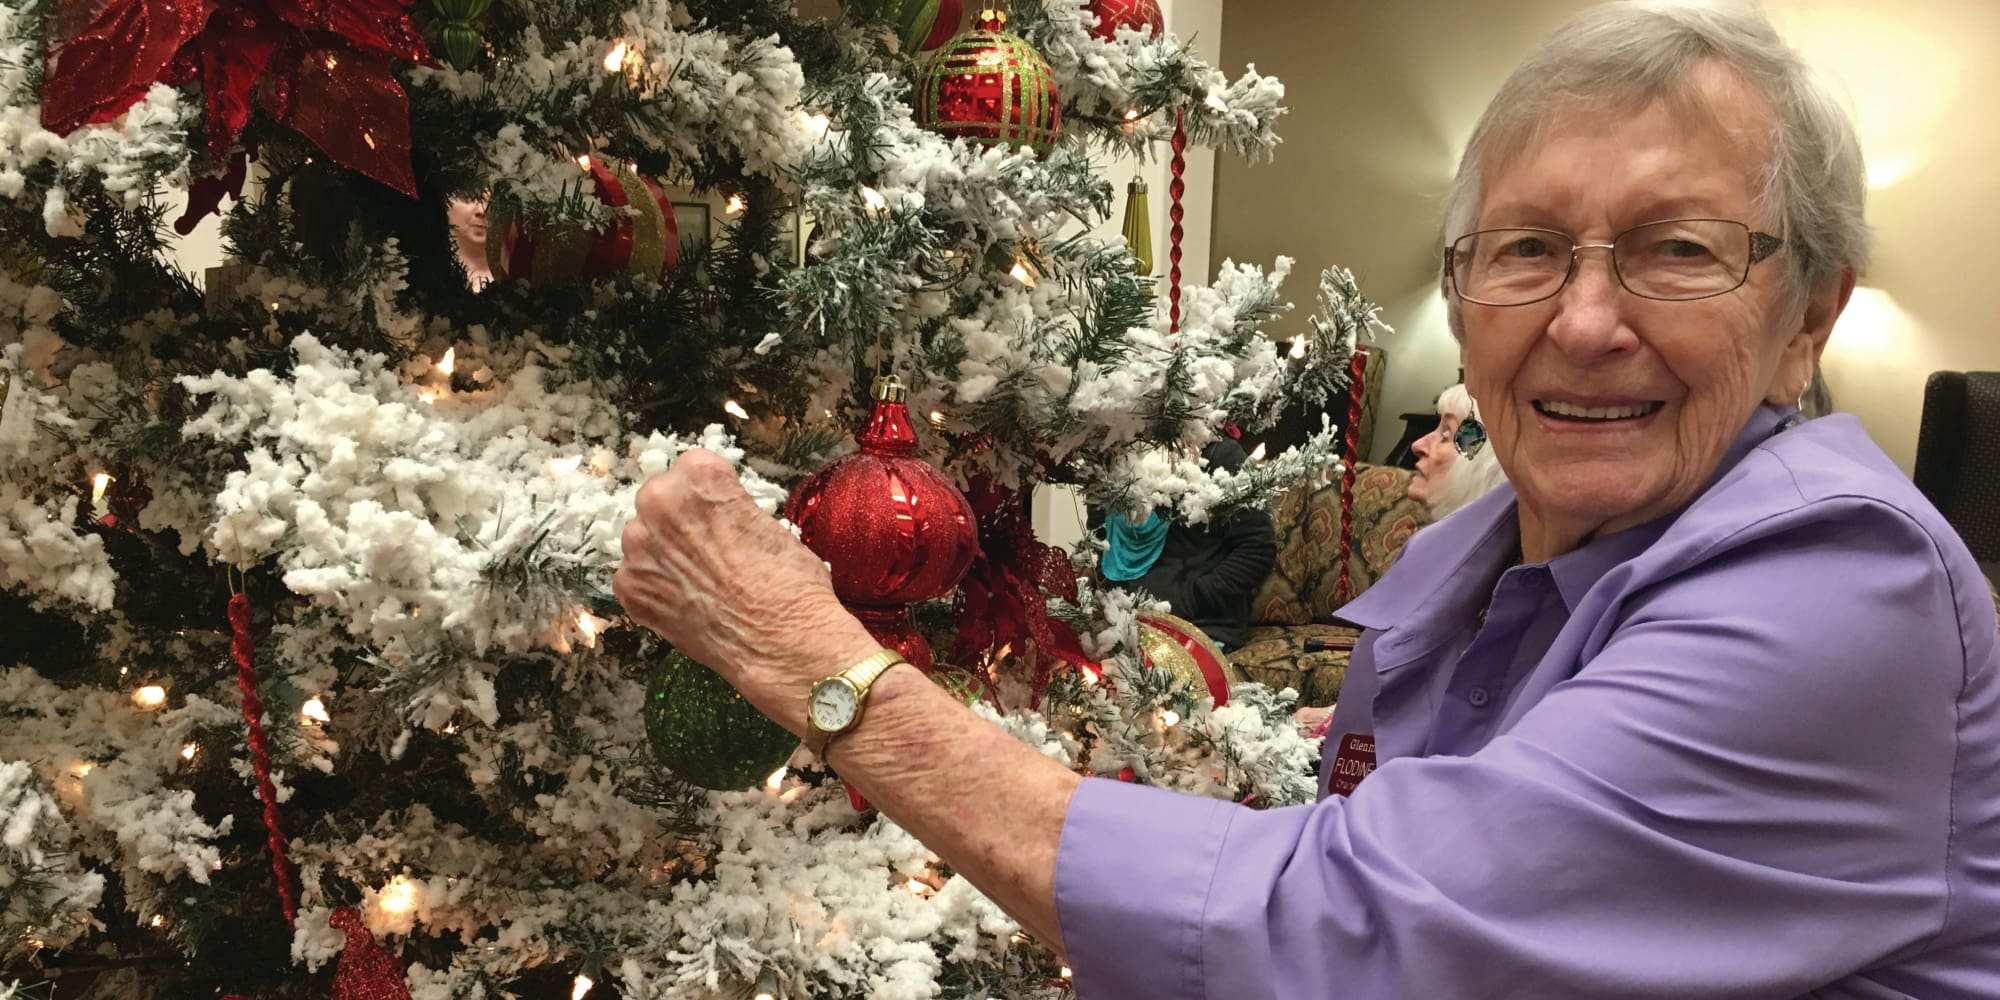 A resident decorating a tree at Mulberry Gardens Memory Care in Munroe Falls, Ohio